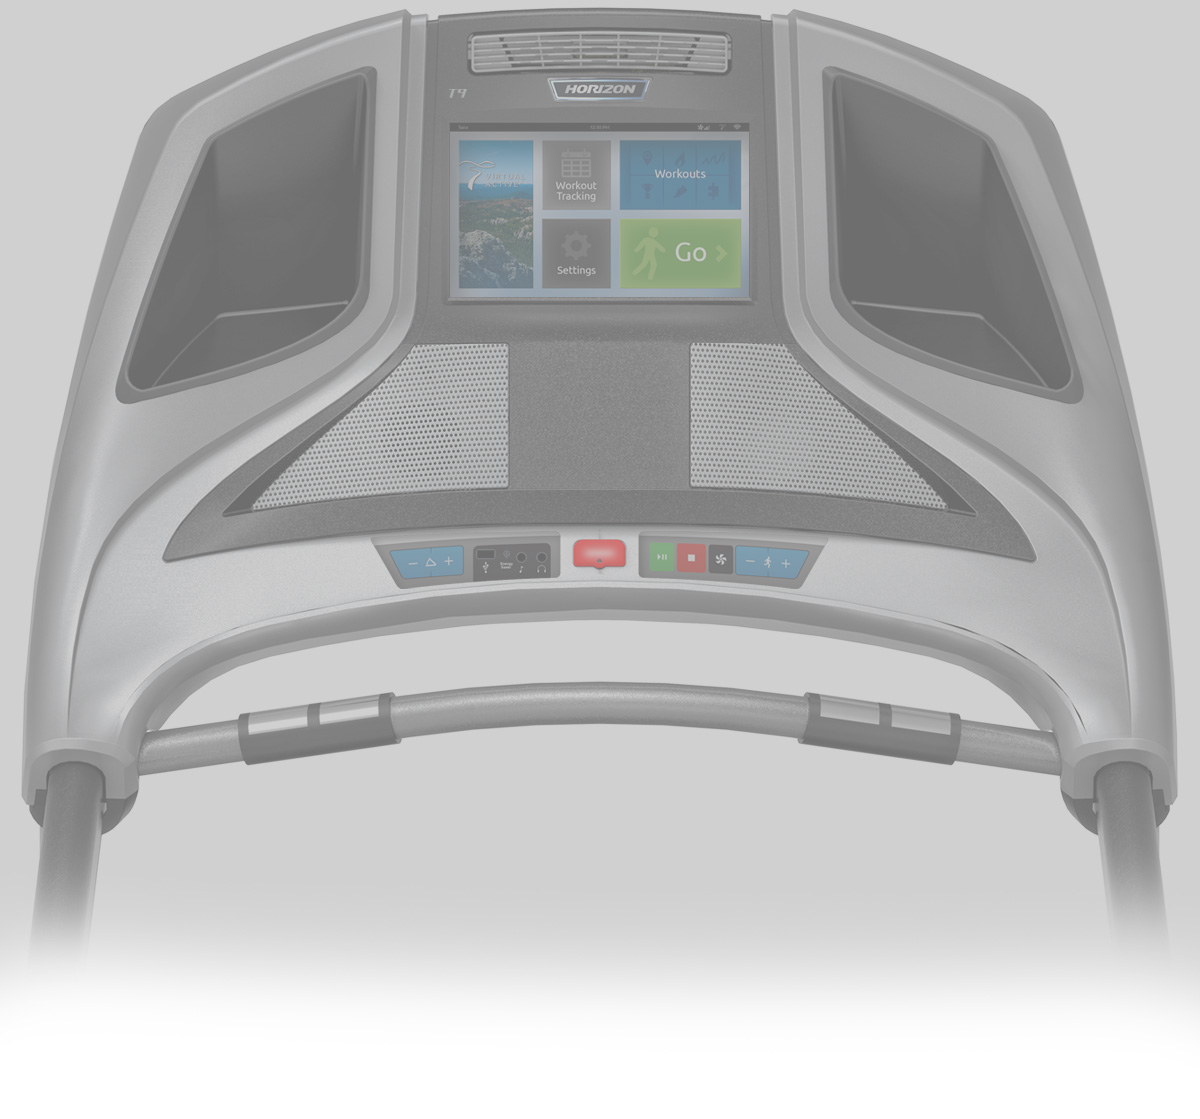 Horizon Fitness Treadmill Evolve: Treadmill Workout